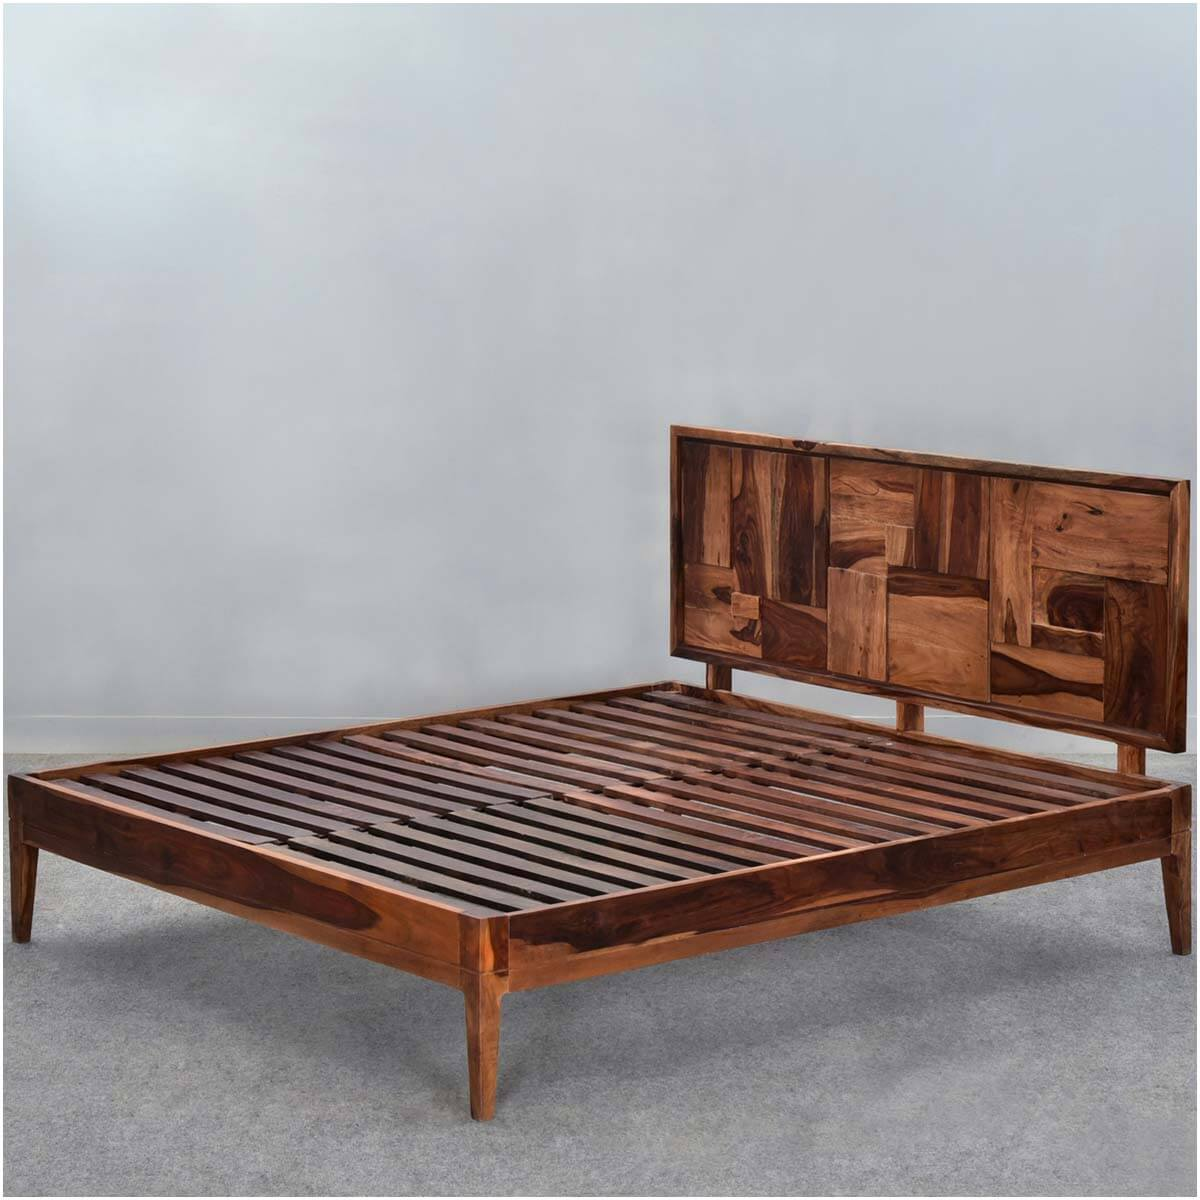 sunrise modern pioneer solid wood full size platform bed frame. Black Bedroom Furniture Sets. Home Design Ideas